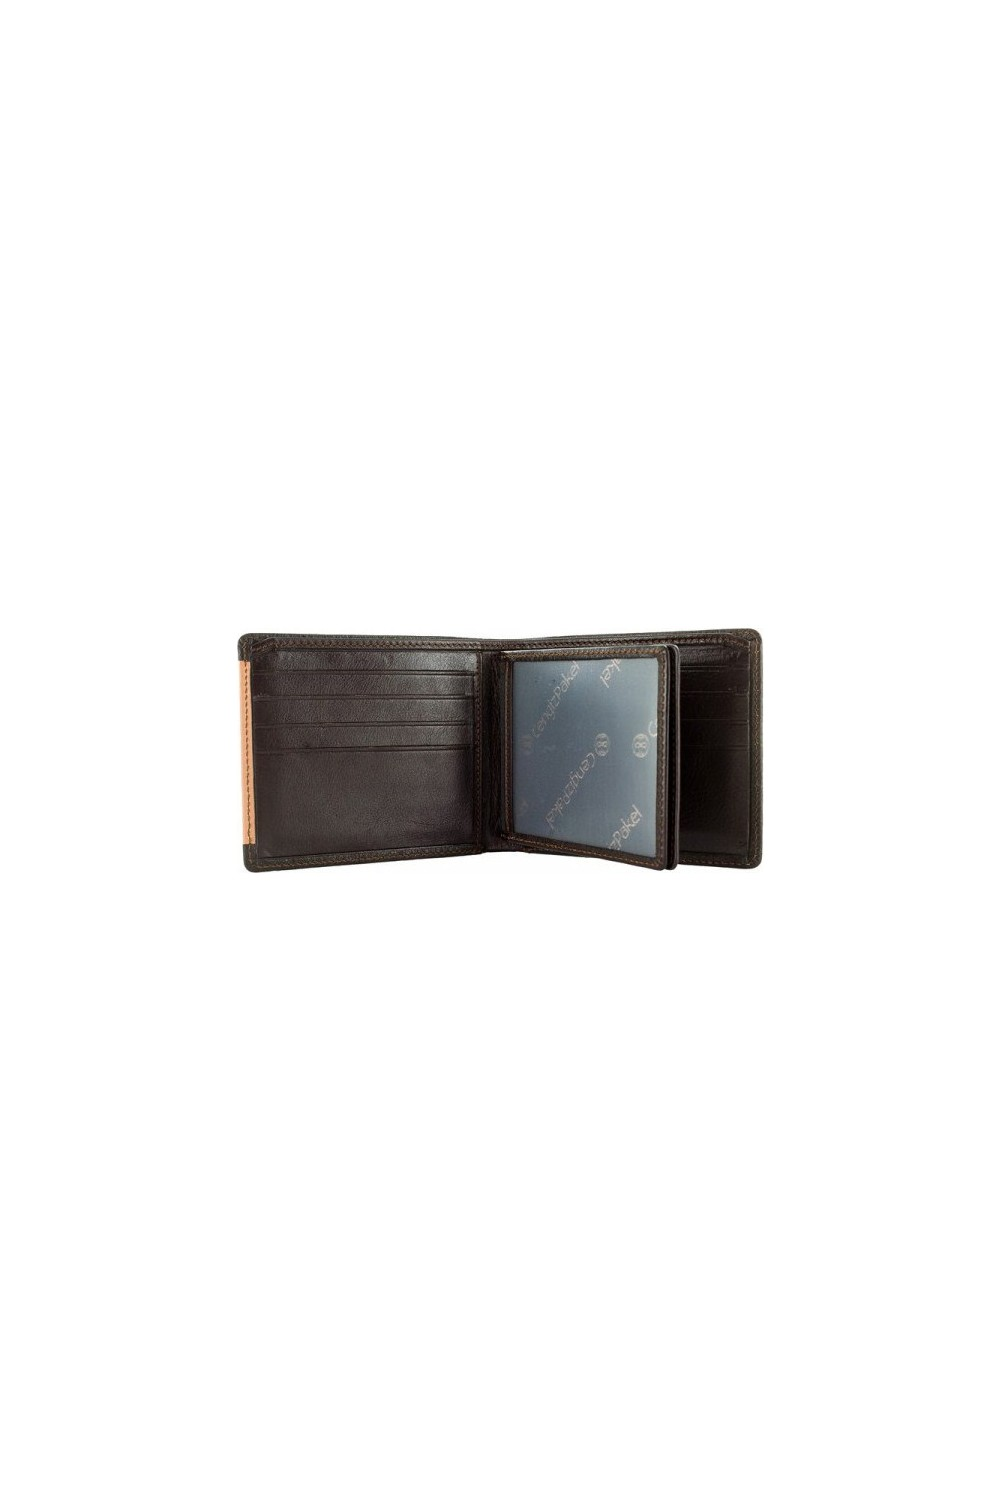 Cengiz Pakel Men's Leather Wallet 27448-Tblc